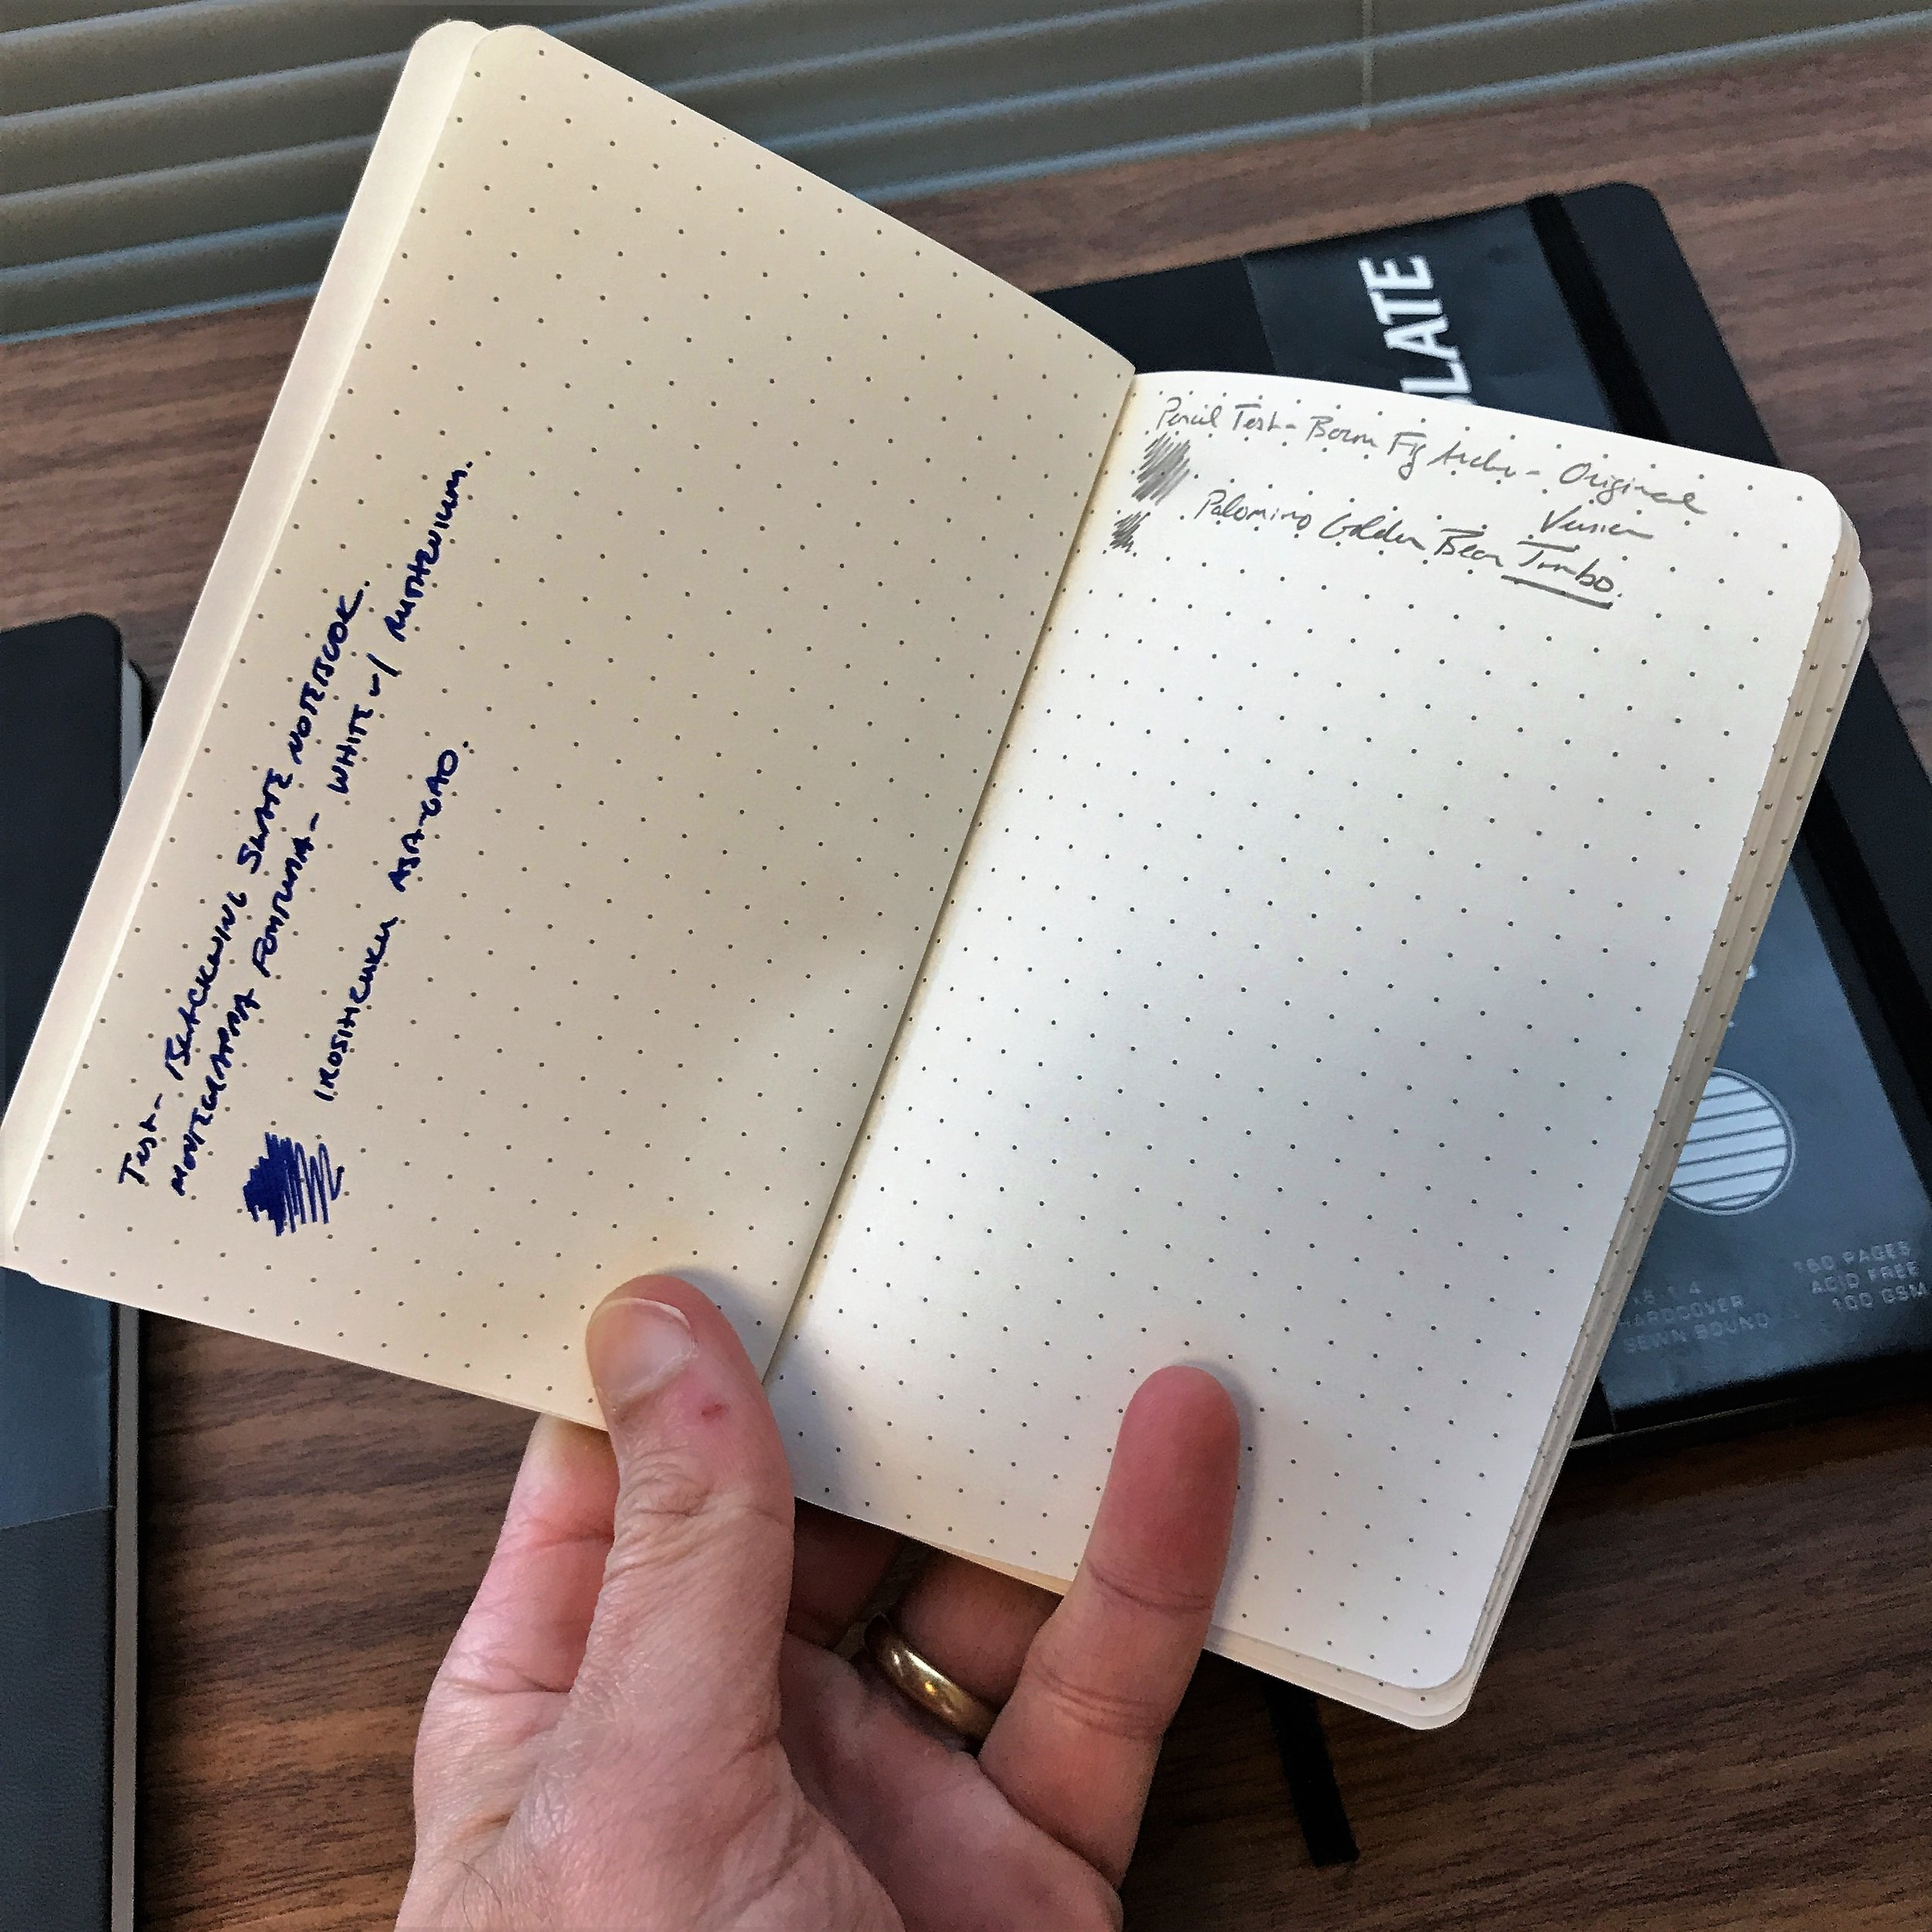 An interesting aspect of the Clutch is that Blackwing recommends you write with the notebooks longways (i.e., as reflected in the writing sample on the left).